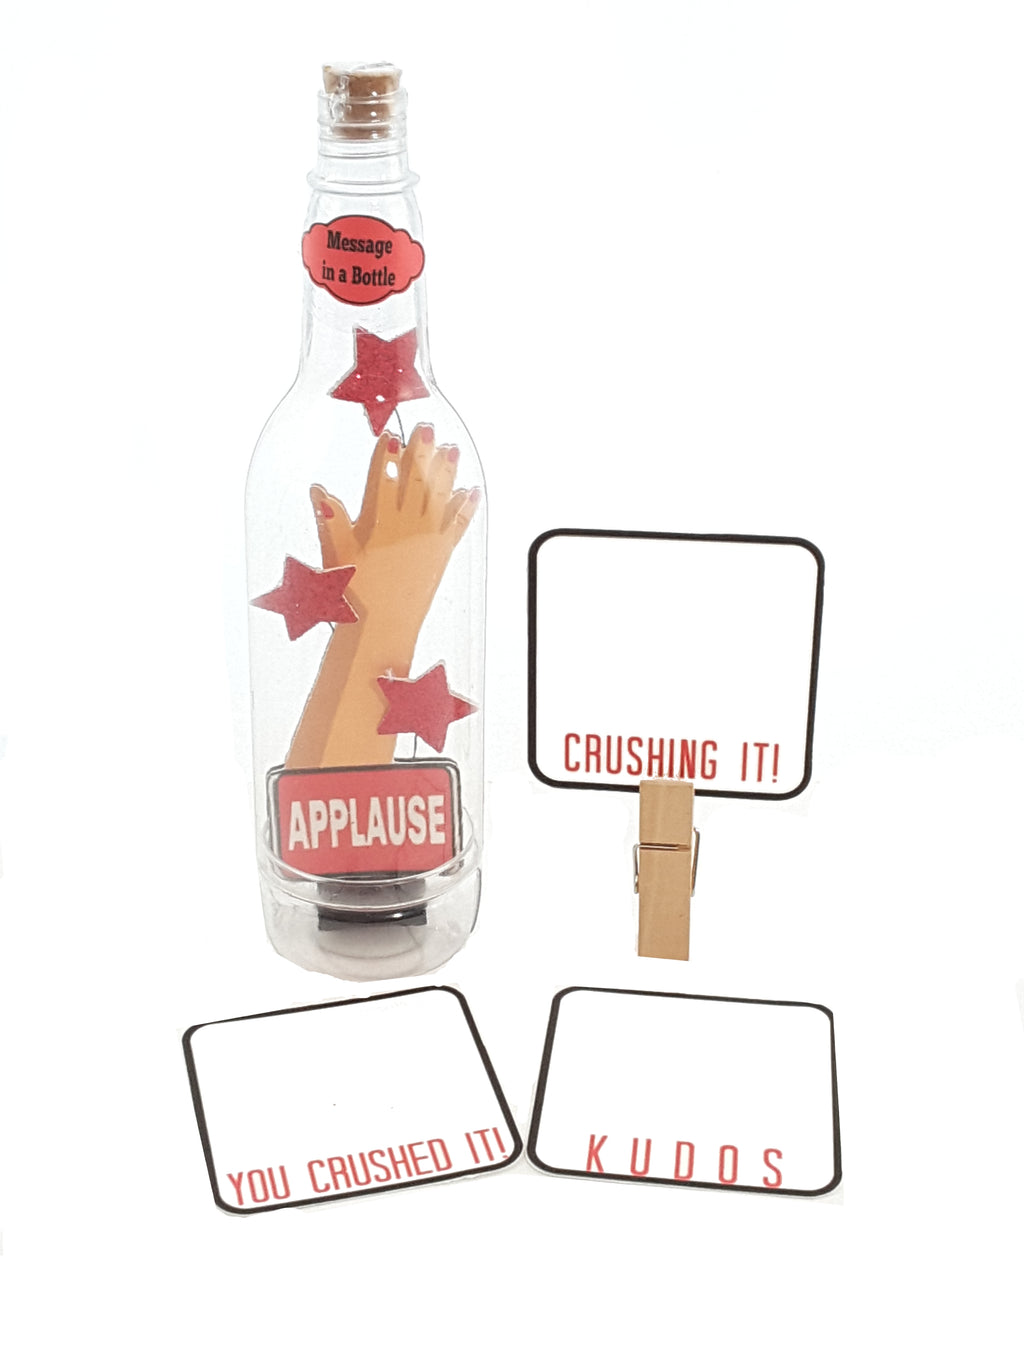 Personalized Message in a Bottle featuring Applause - Crushing it!